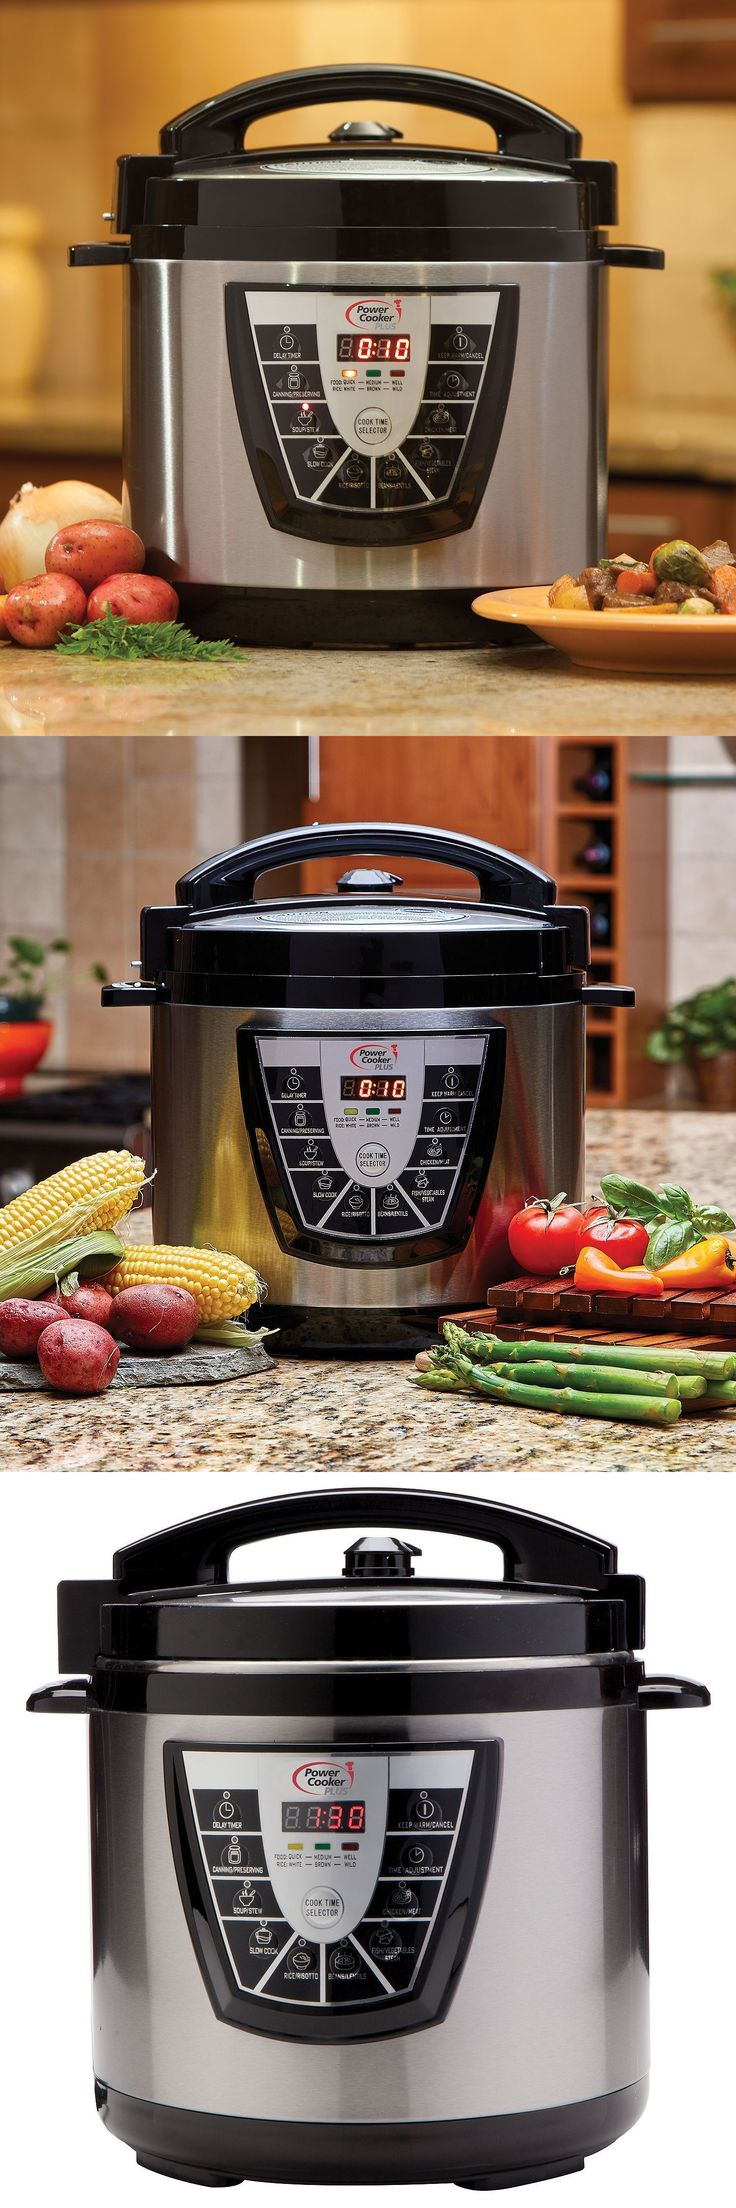 5l accents range only electricals co uk small kitchen appliances - Small Kitchen Appliances Tristar Power Cooker Plus Canner Plus Xl Electric 8 Quart Stainless Steel